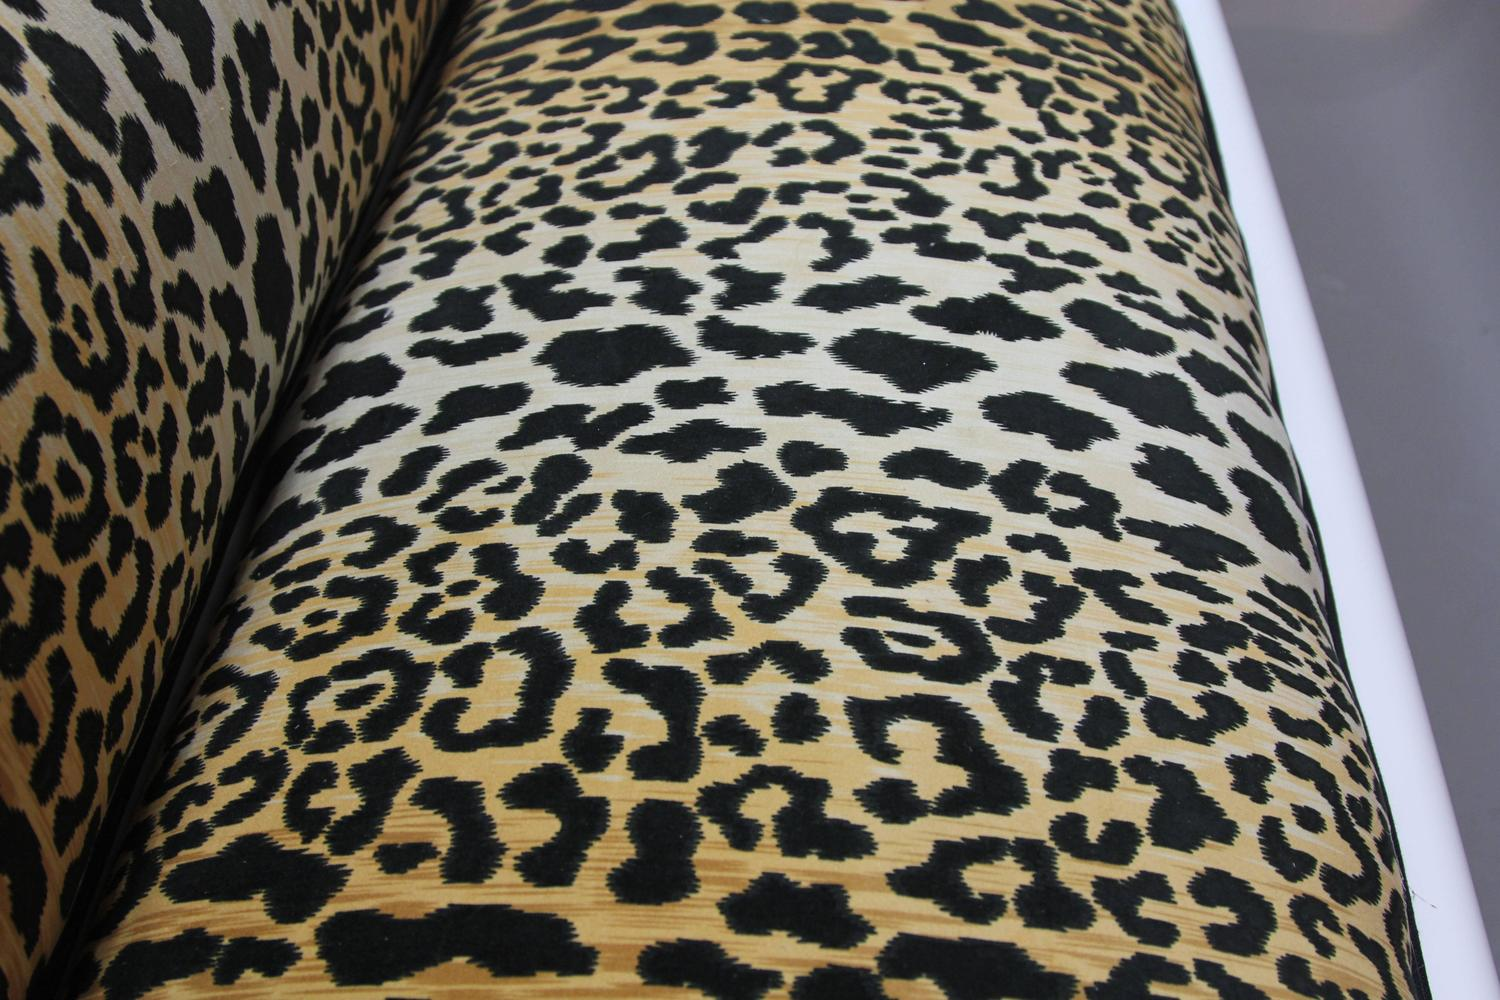 leopard print sofa appears sleeper solsta newly laquered and upholstered empire style in